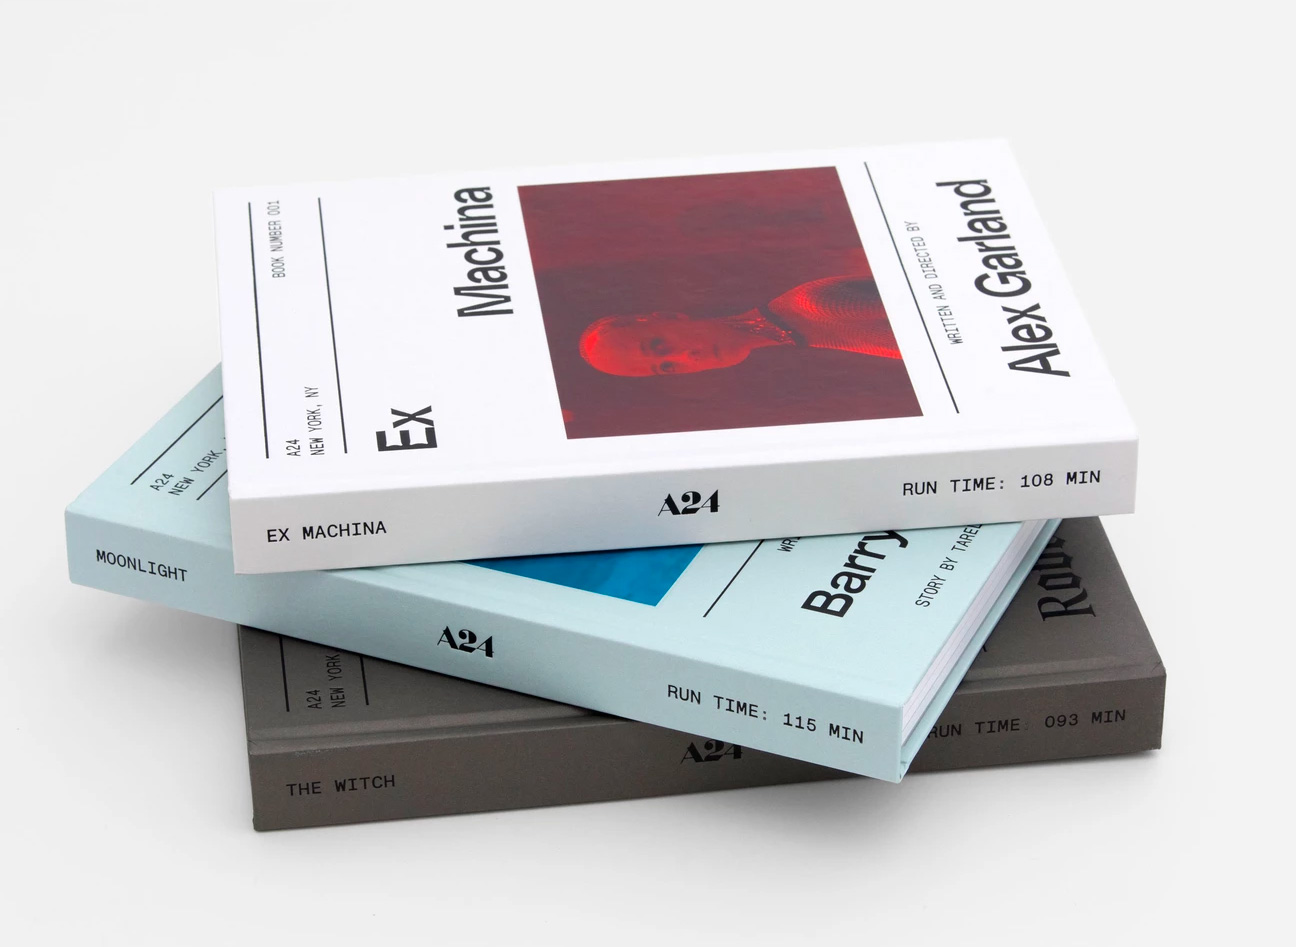 A24 Screenplay Books Celebrate Original Cinema at werd.com